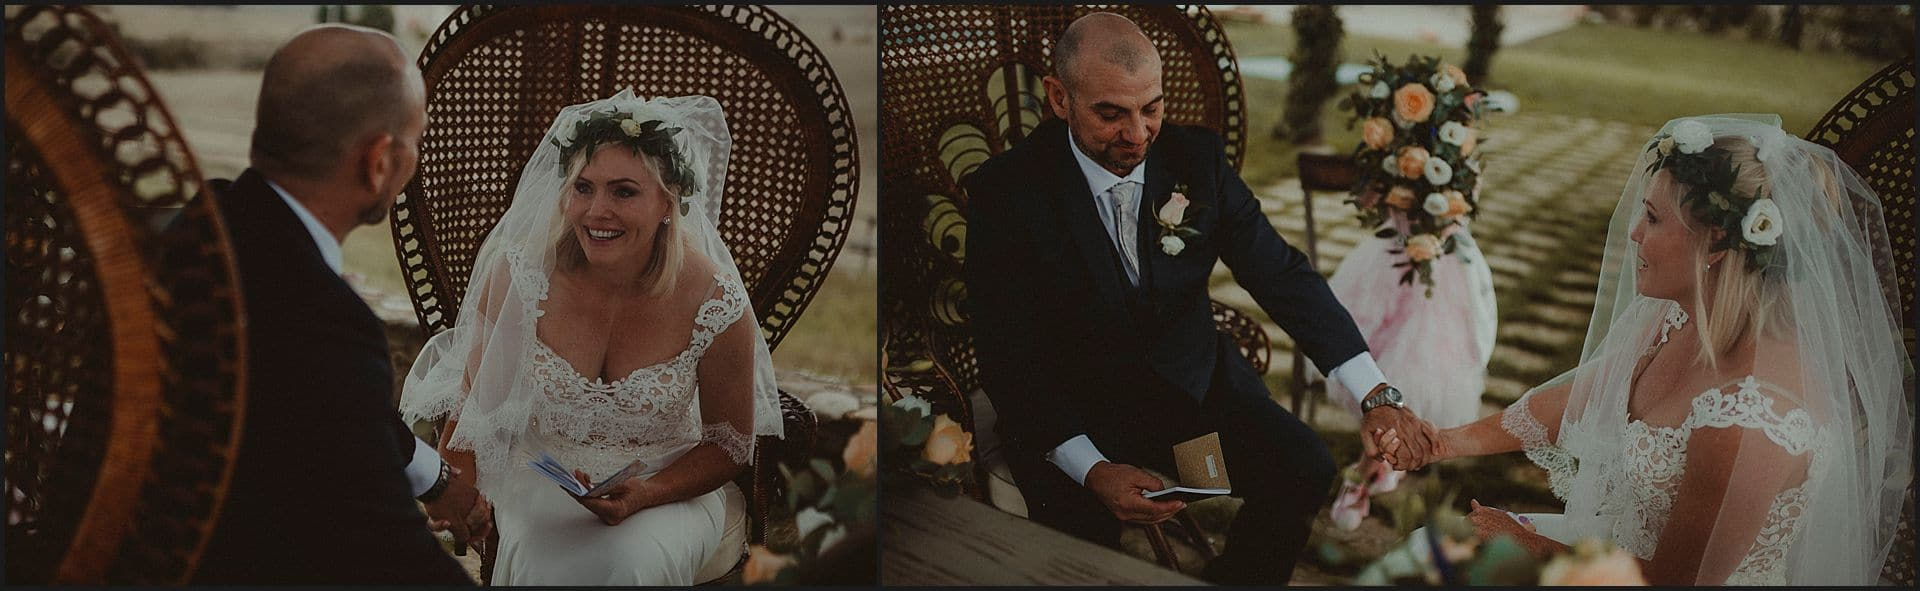 destination wedding, australian couple, bride, groom, wedding vows, locanda in tuscany, emotional moments, tuscany, siena